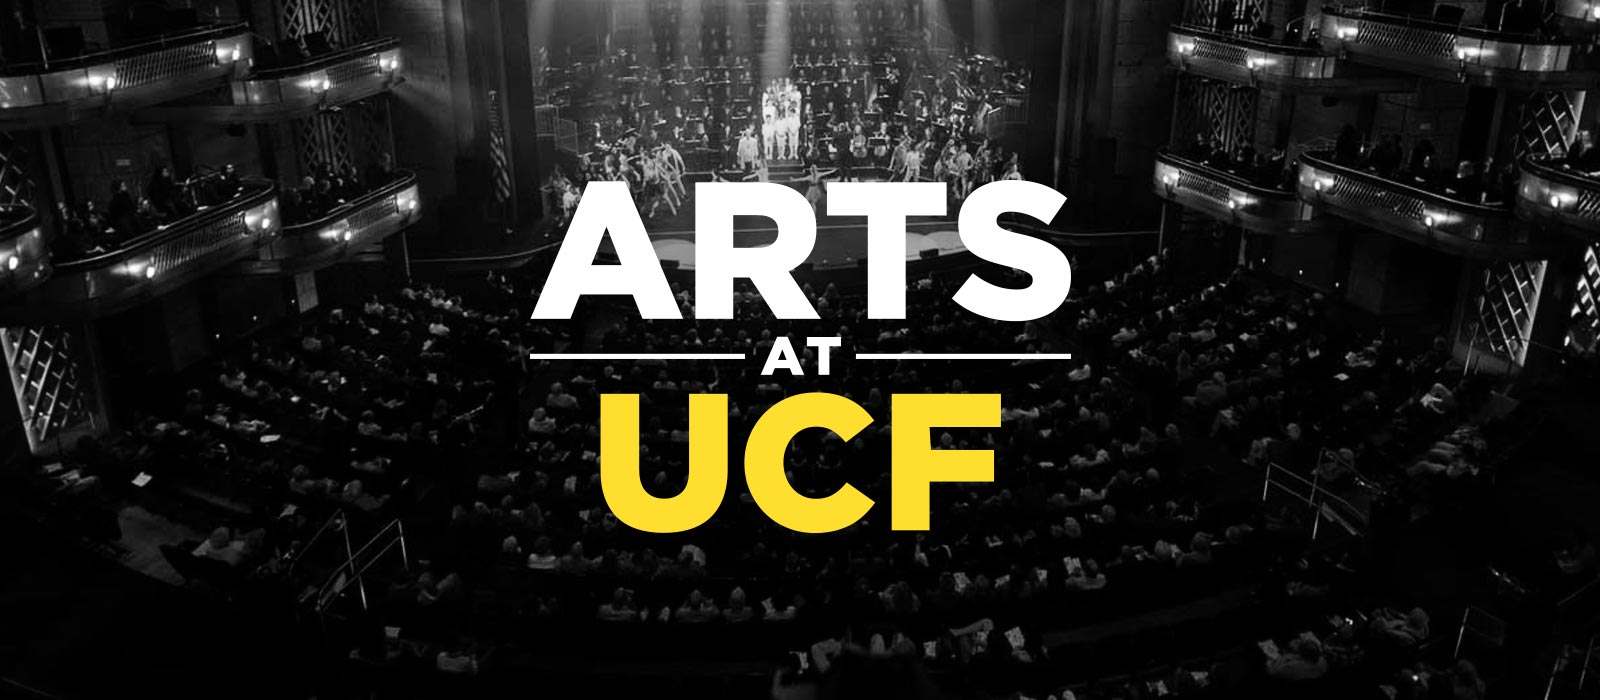 ARTS AT UCF overlaid on photo of crowd in Disney Theater